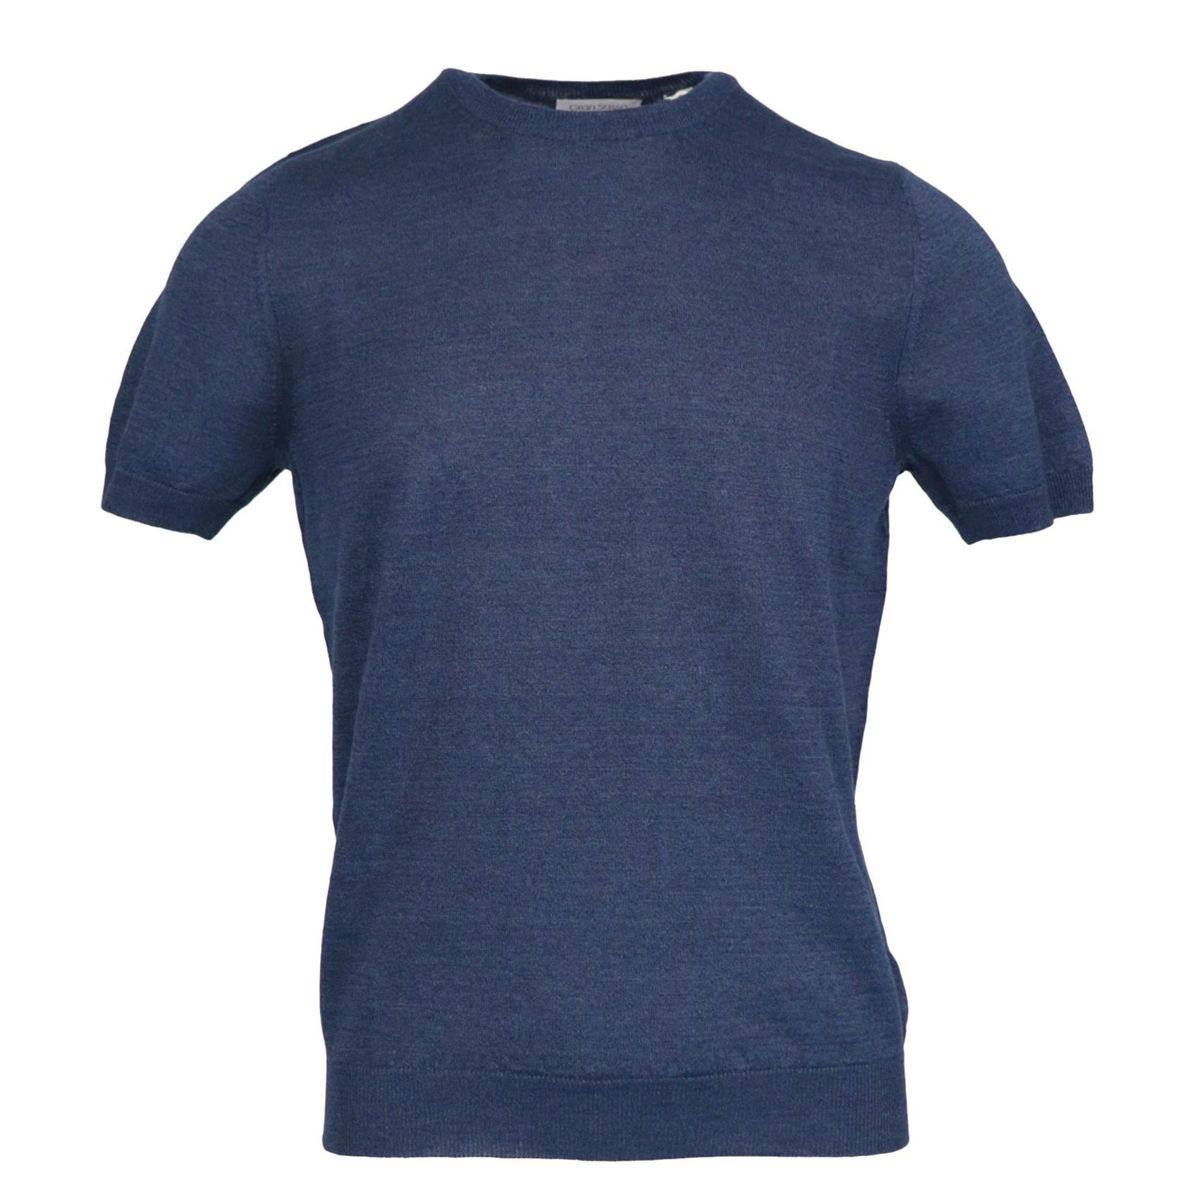 Cotton half-sleeved crew neck sweater with ribbed profiles Blue Gran Sasso